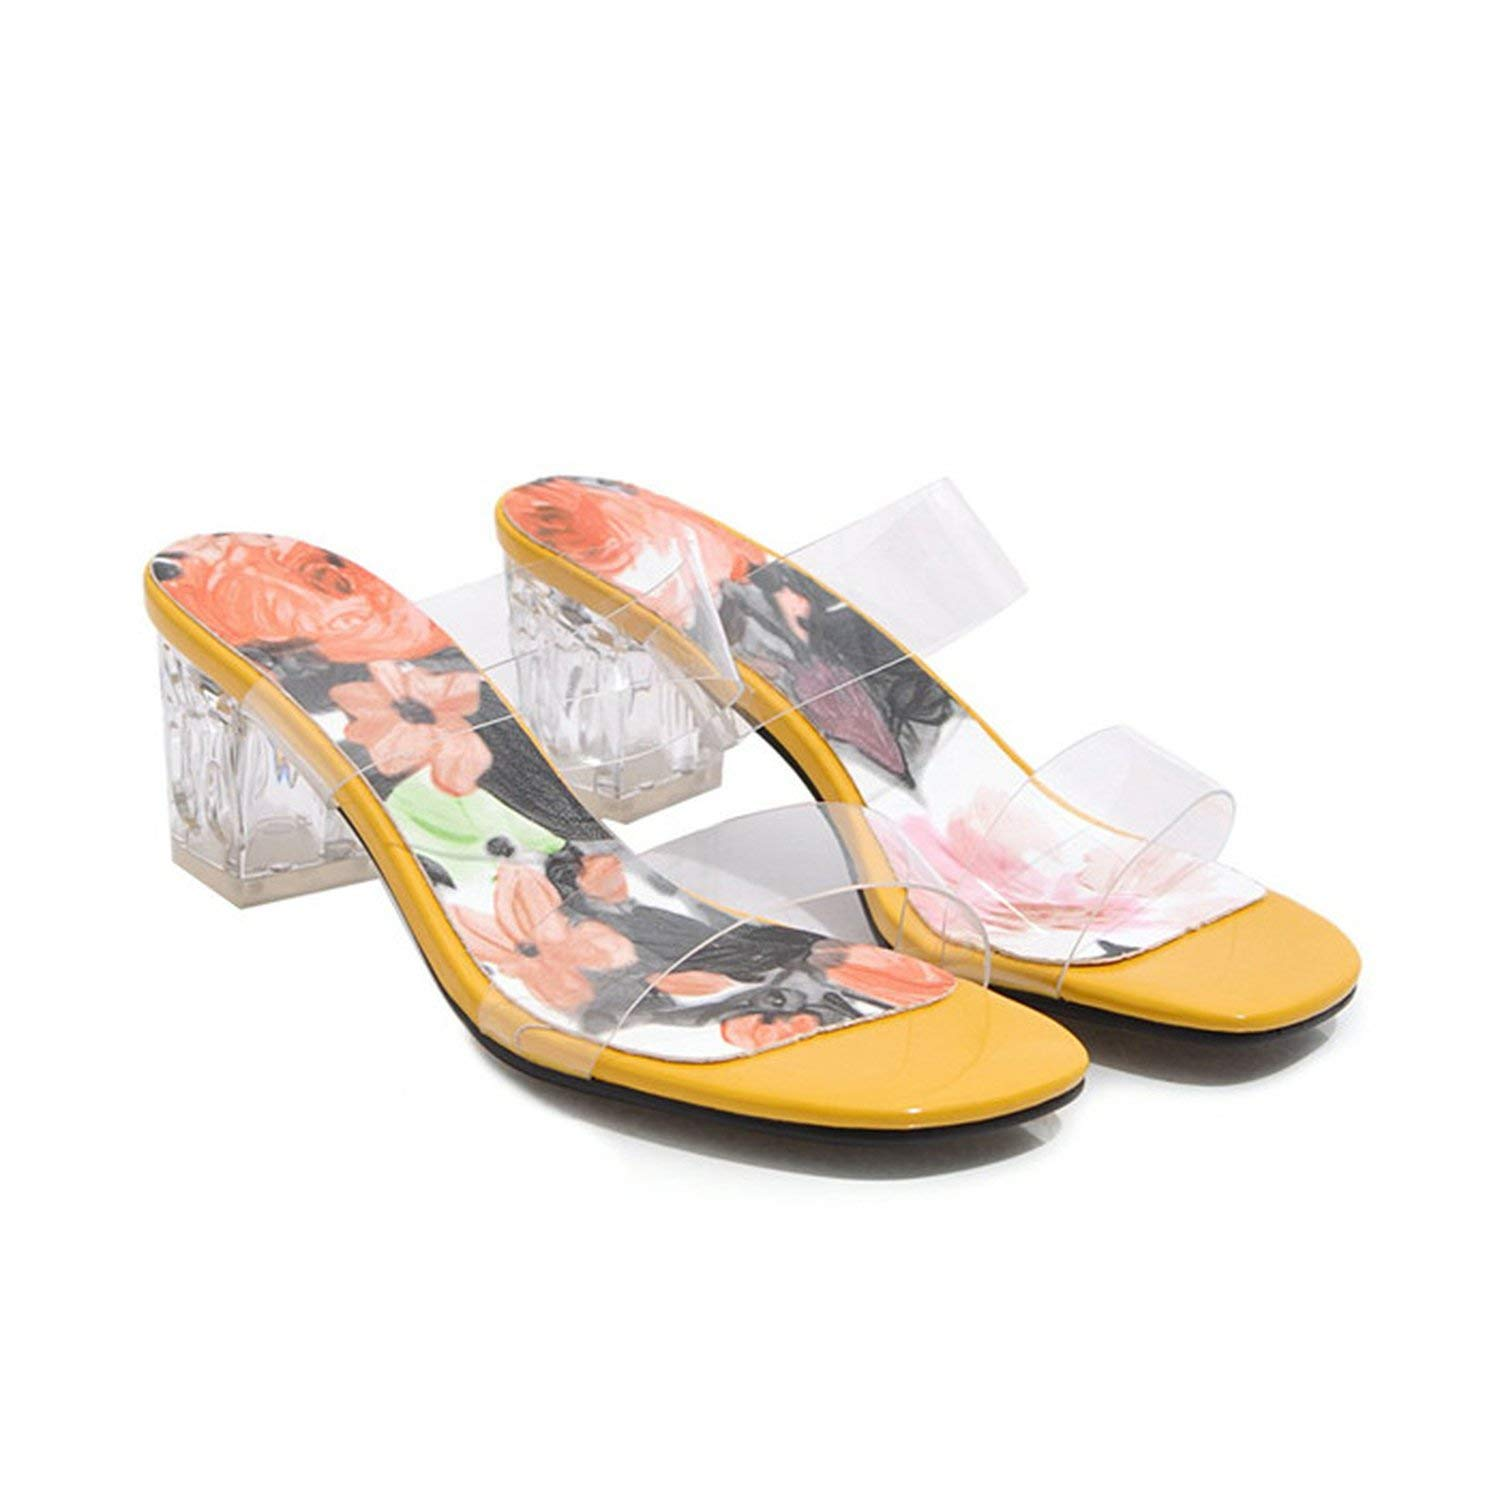 YELLOW coolemon Summer Slippers Women shoes Flower Square High Heel shoes Transparent Open Toe Slides Ladies Sandals Pink Plus Size 3-12